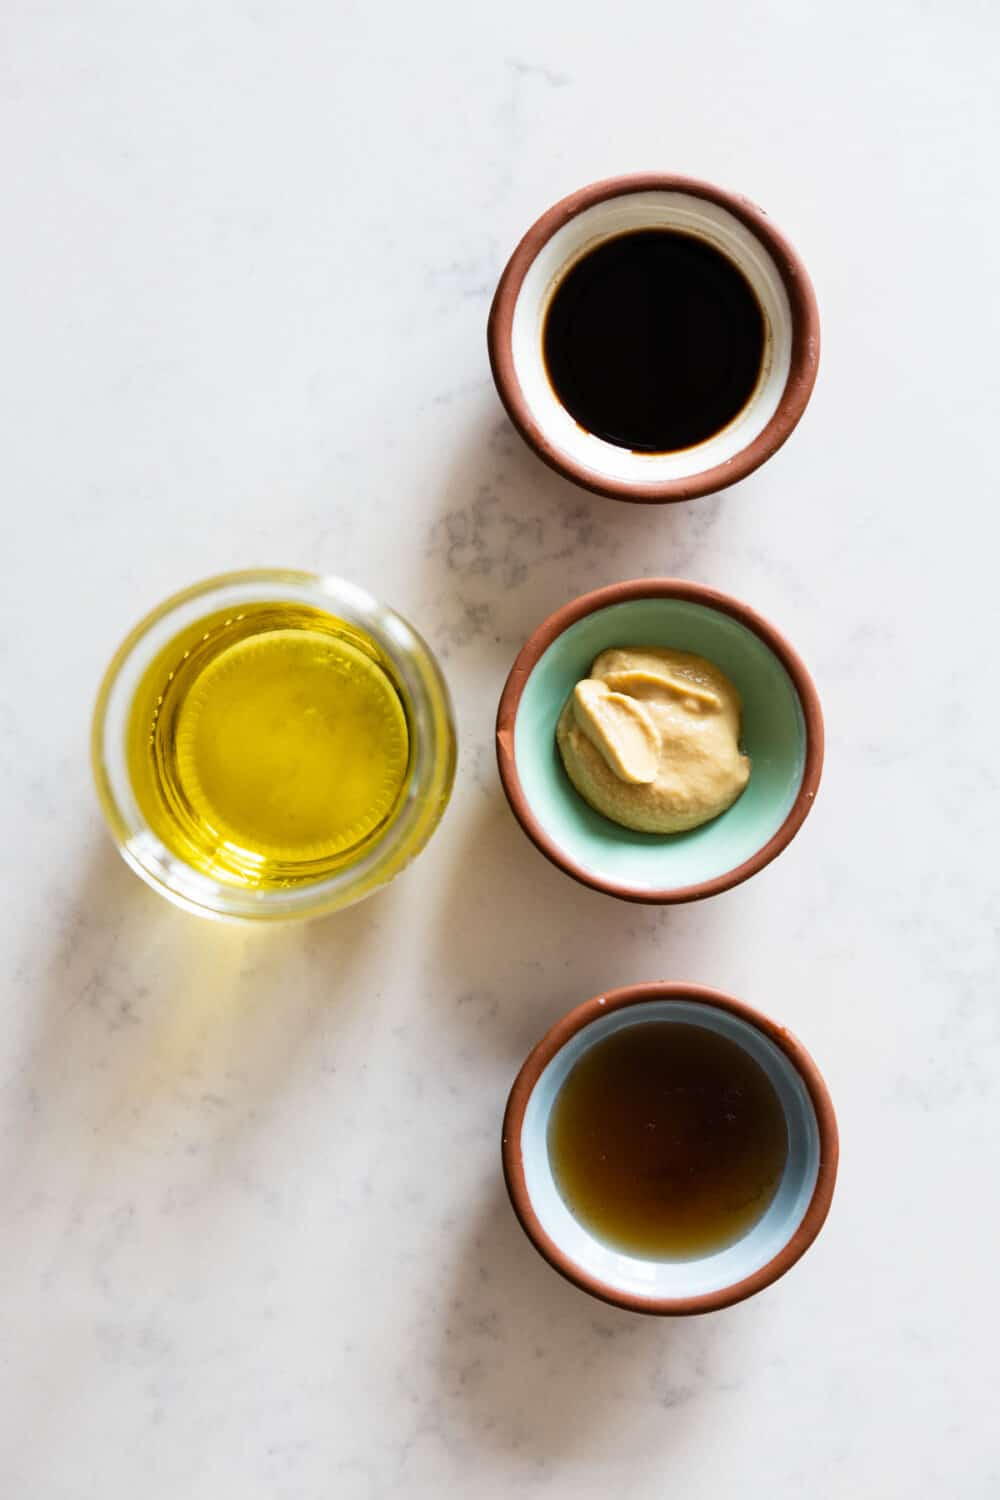 Ingredients for Maple Mustard Balsamic Dressing laid out on a kitchen counter.